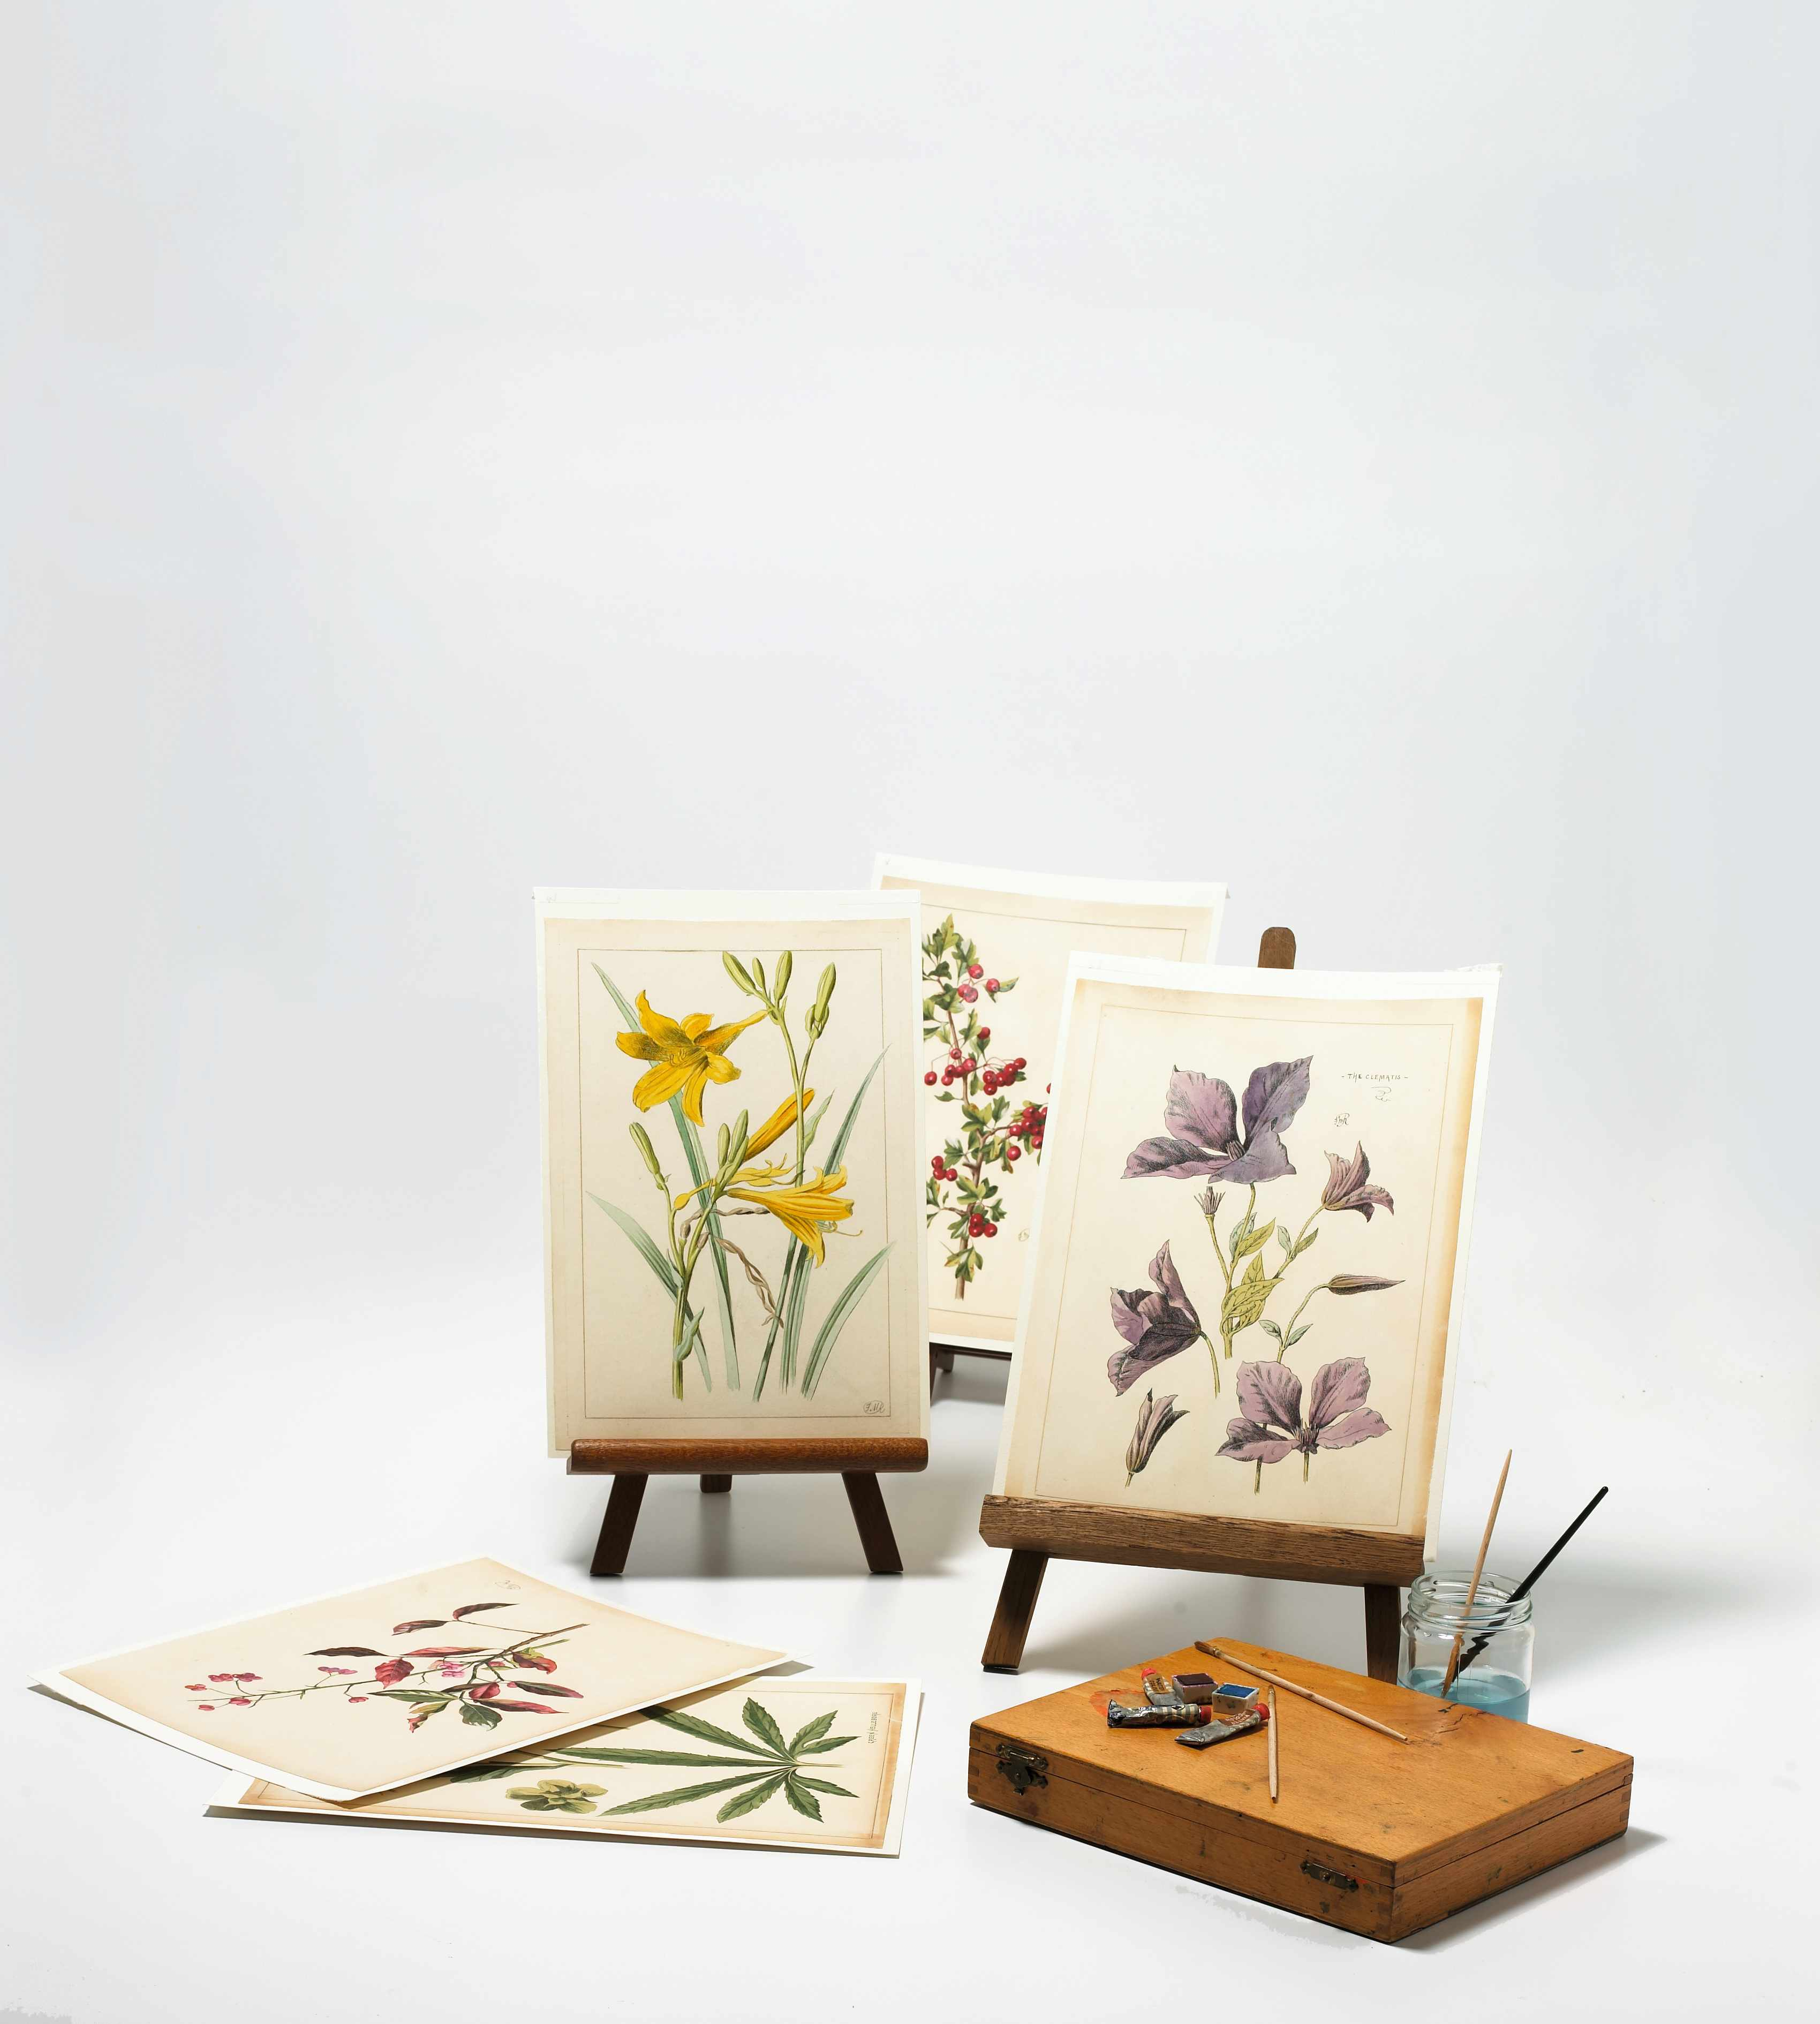 A series of Victorian botanical watercolour paintings on easels